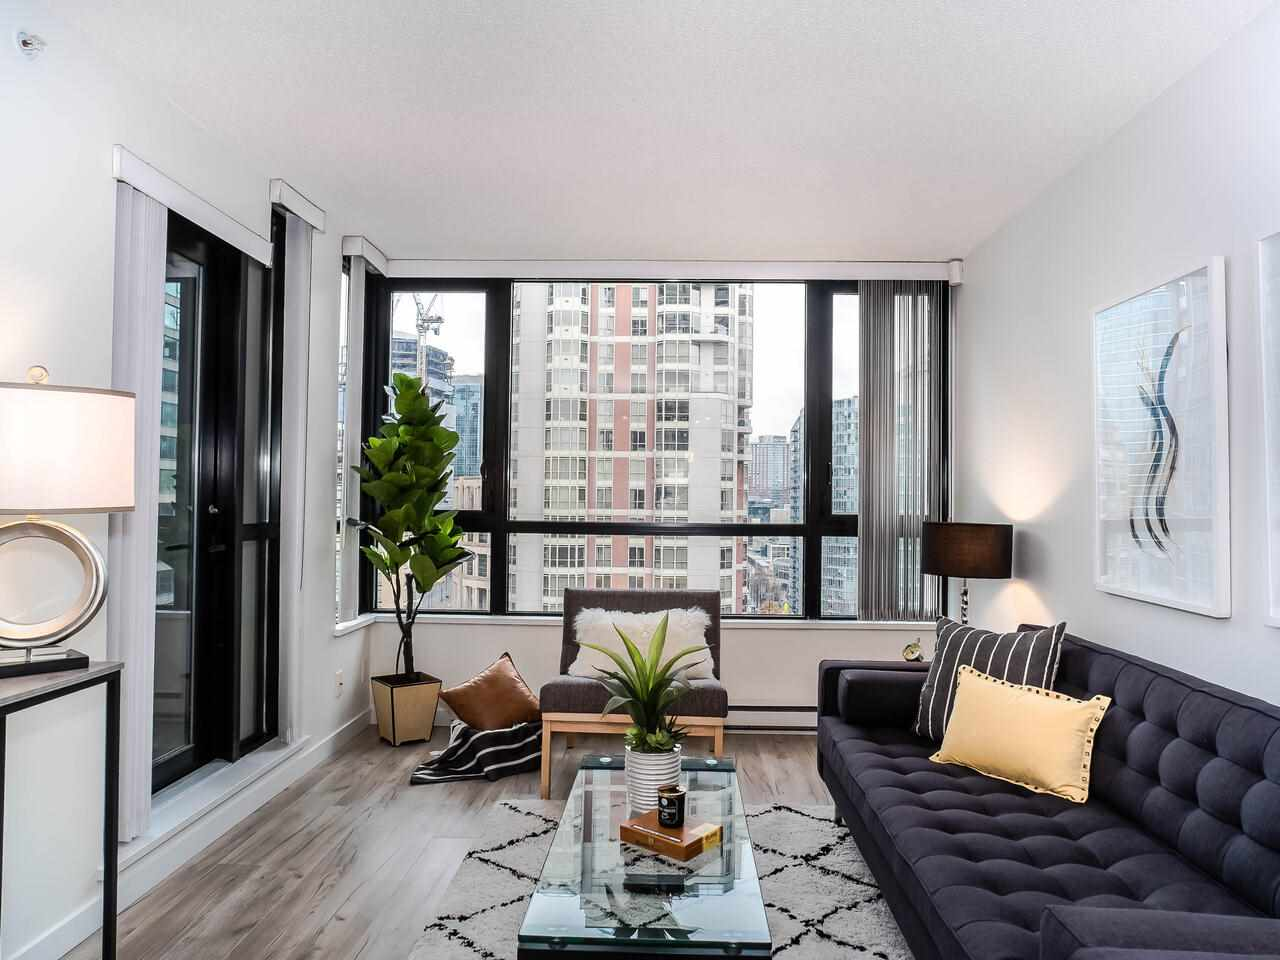 1810 909 MAINLAND STREET - Yaletown Apartment/Condo for sale, 1 Bedroom (R2518845) - #14